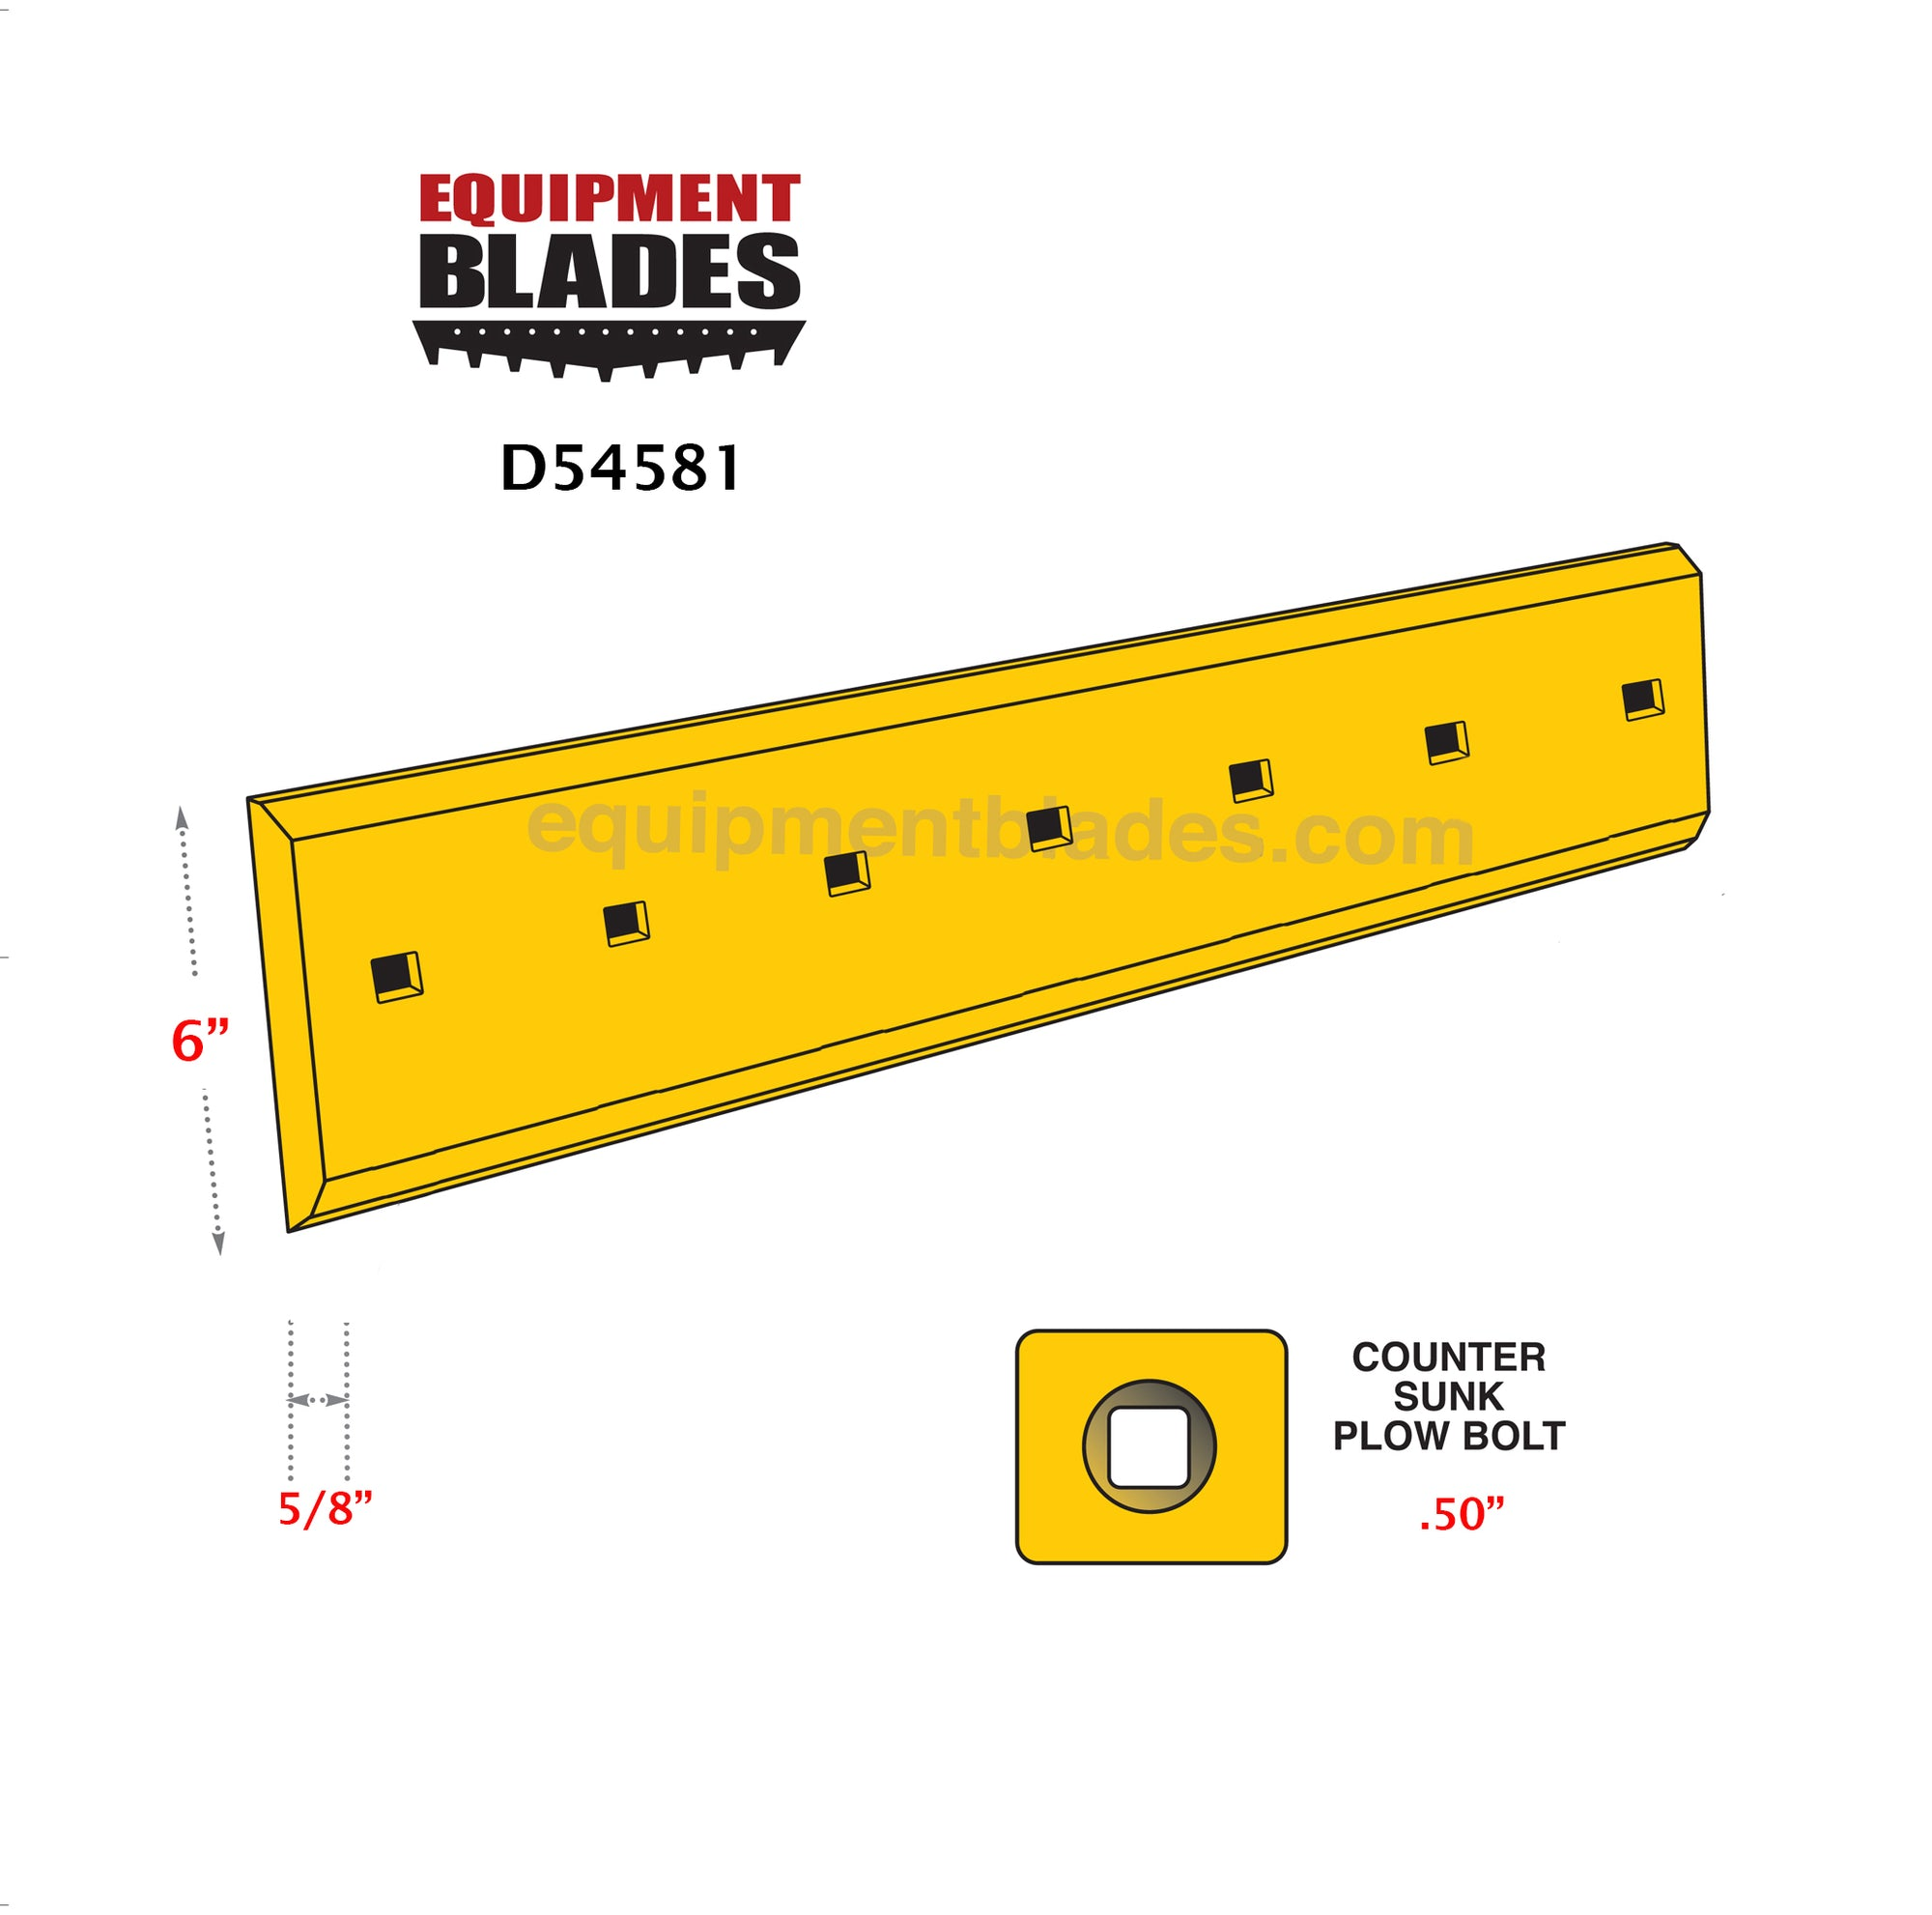 D54581-Equipment Blades Inc-Equipment Blades Inc